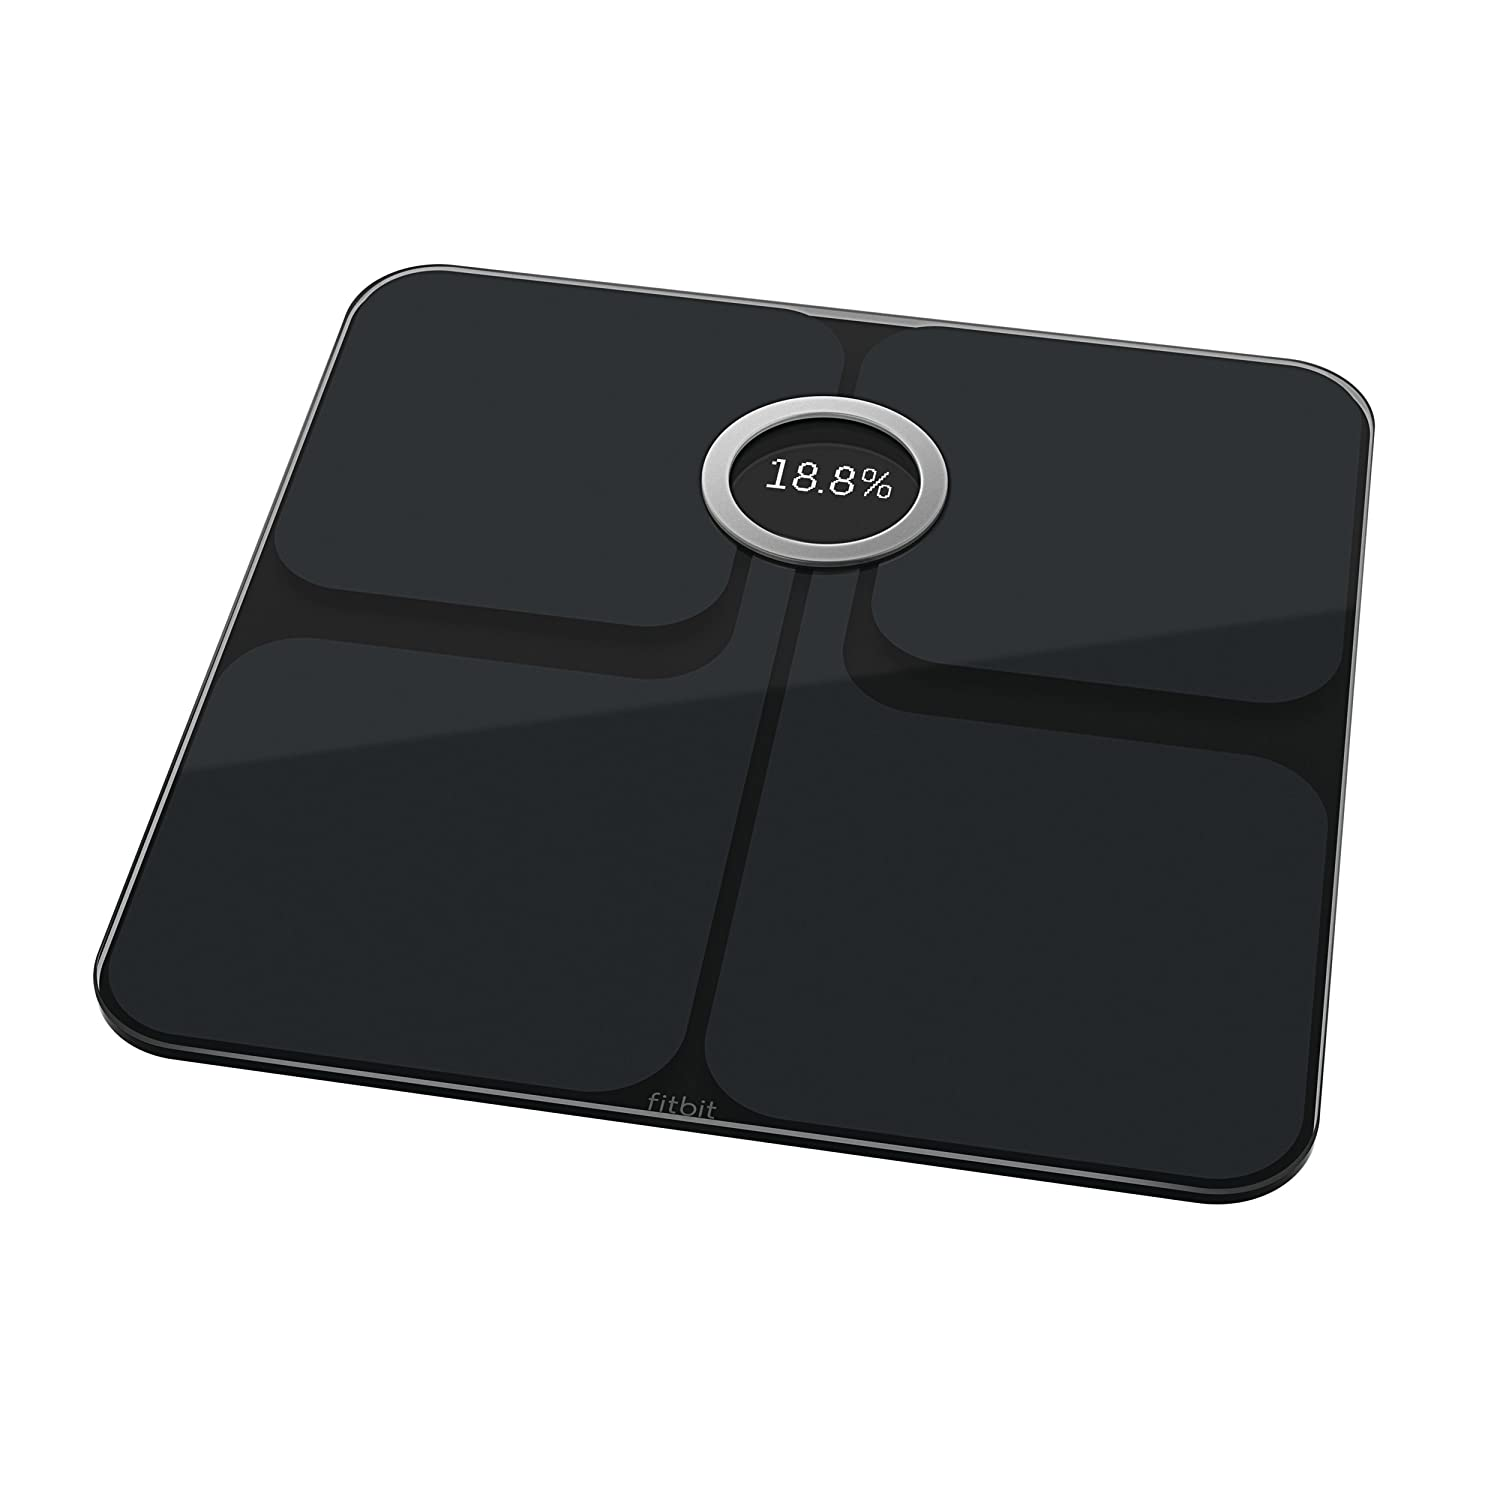 taylor body fat analyzer and scale 5571 manual